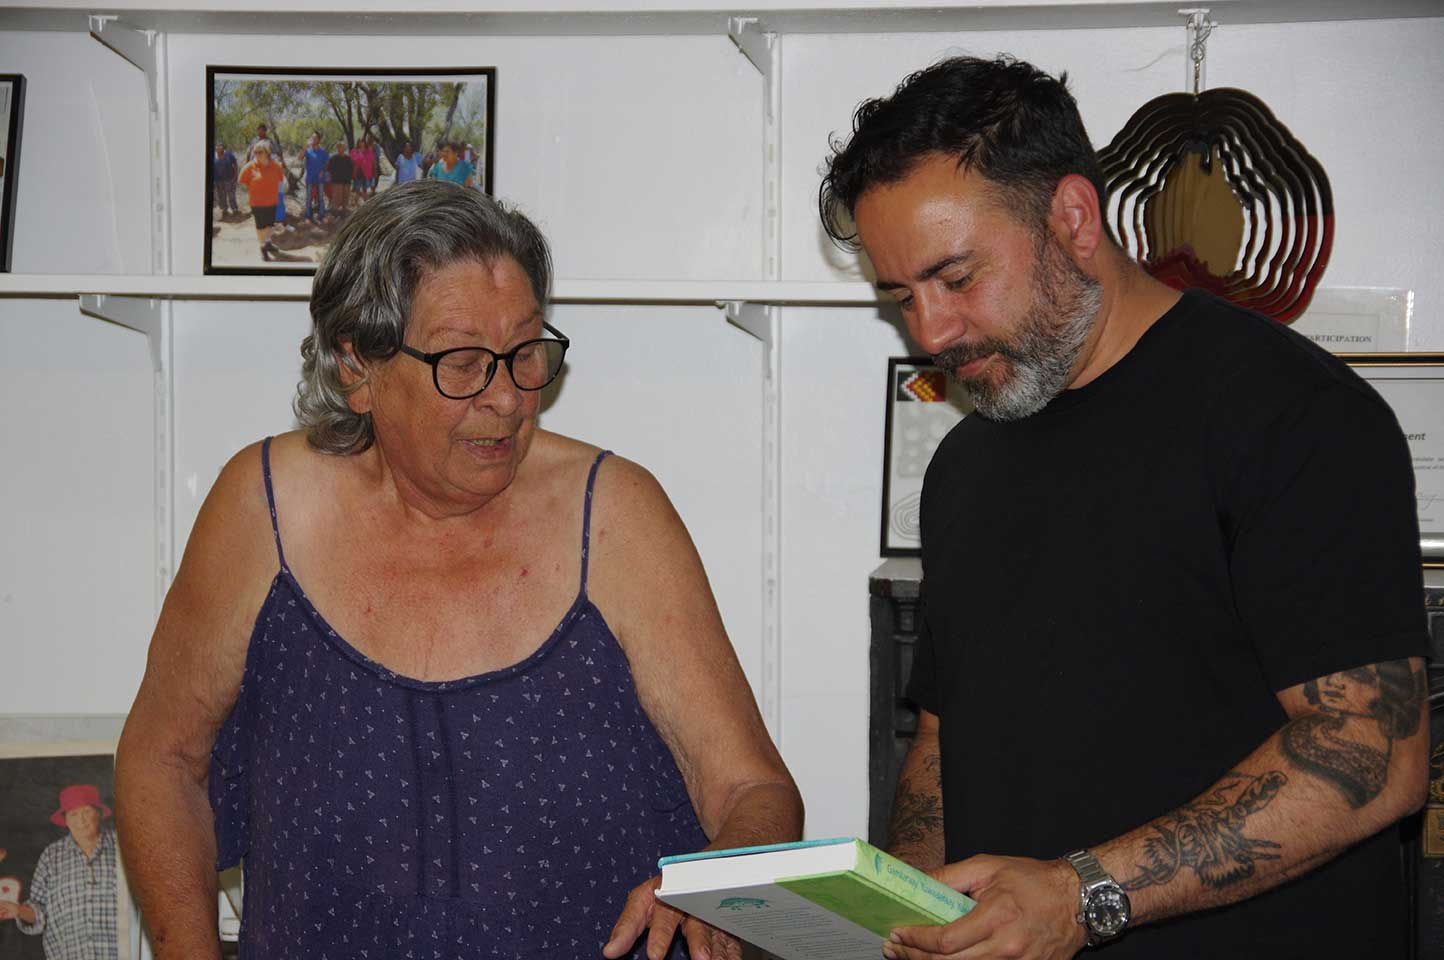 DEG's Virginia Robinson presents Reko Rennie with Gamilaraay / Yuwaalaraay dictionary